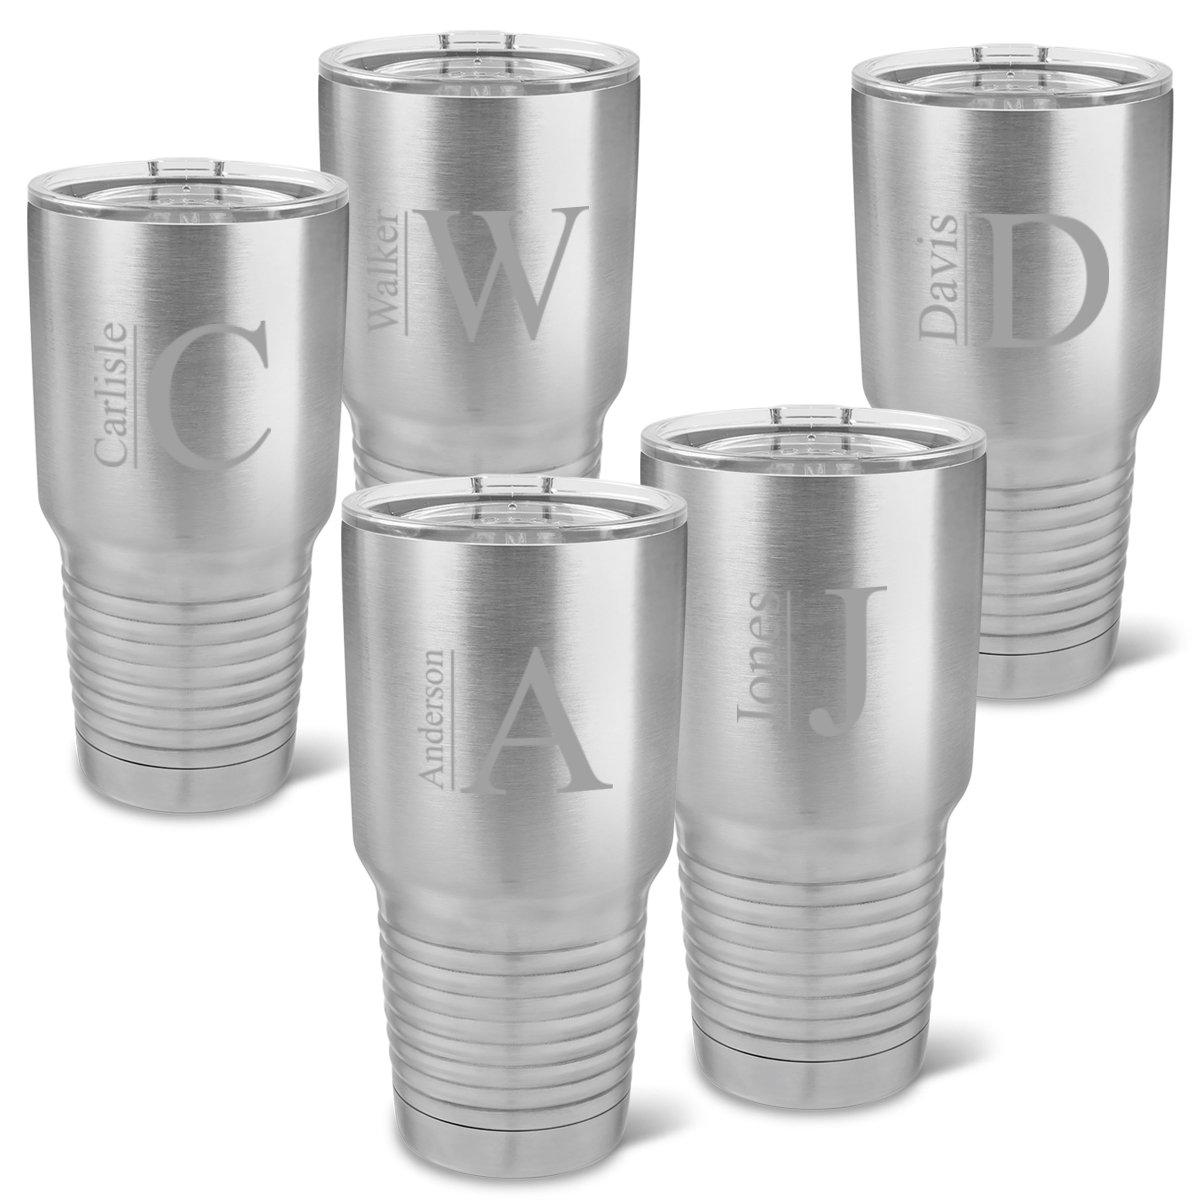 Personalized 30 oz. Stainless Steel Double Wall Insulated Tumbler Set of 5 - All